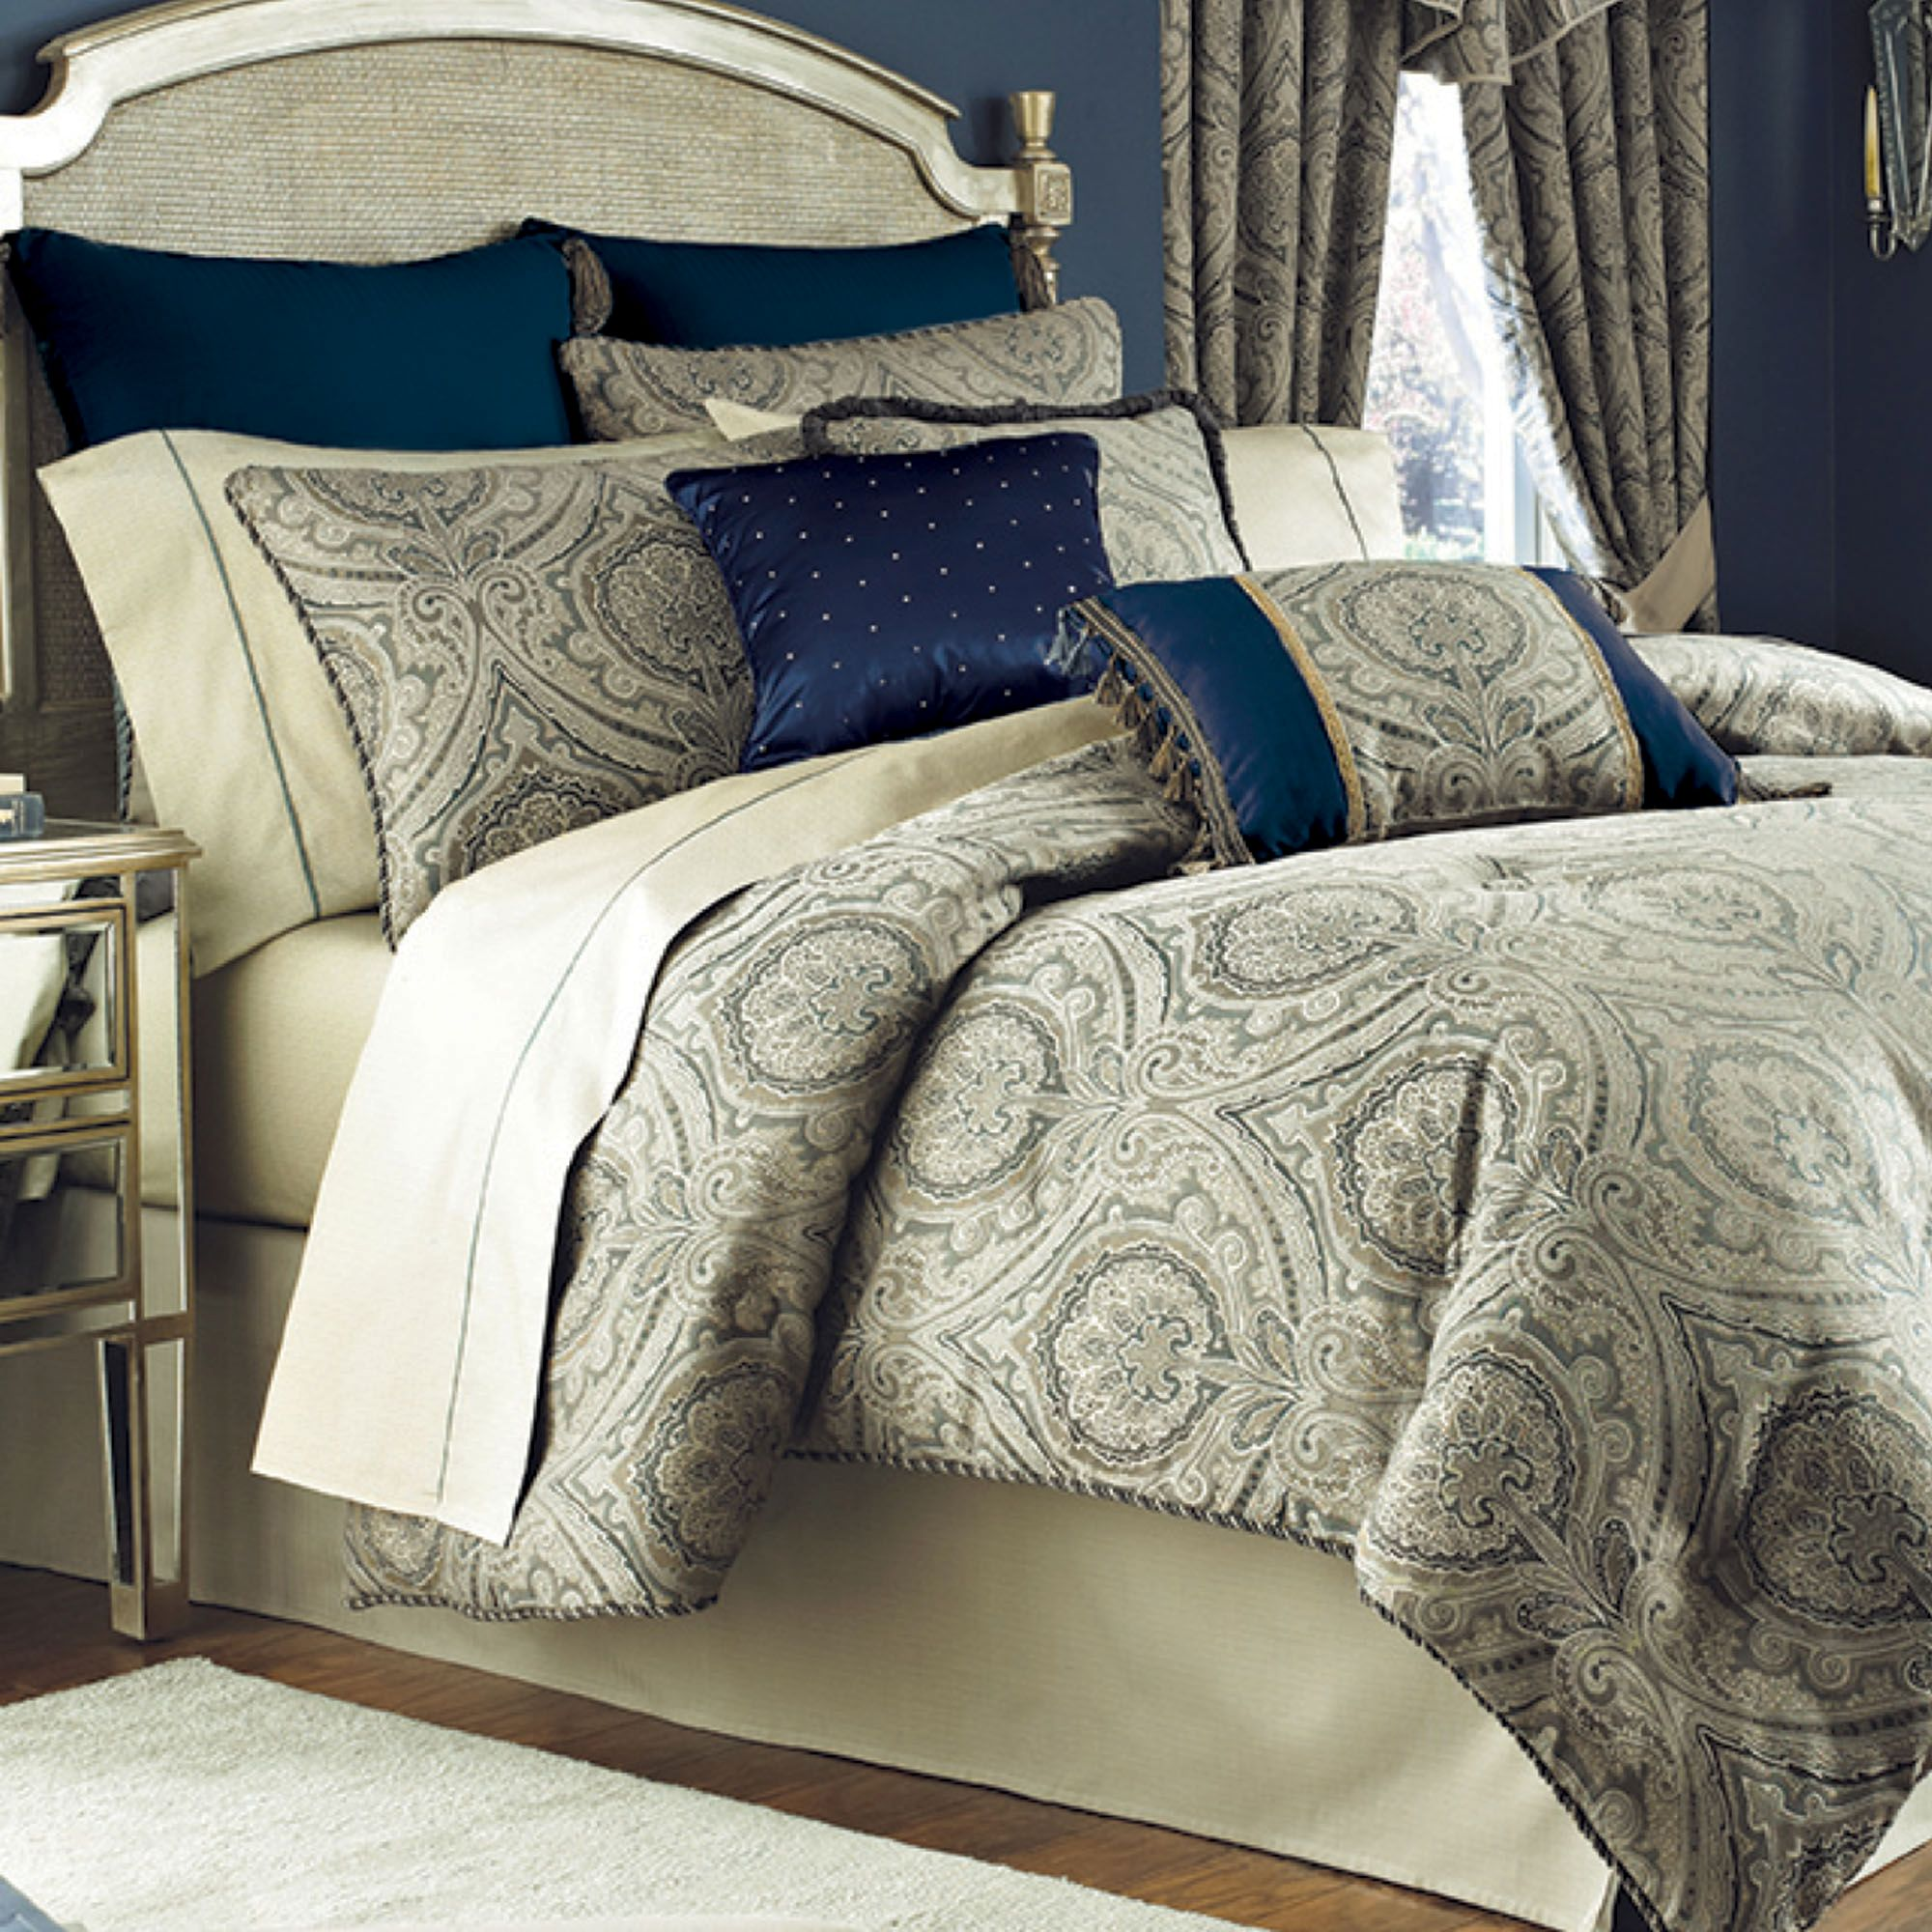 Captivating comforters sets for bedroom design with queen comforter sets